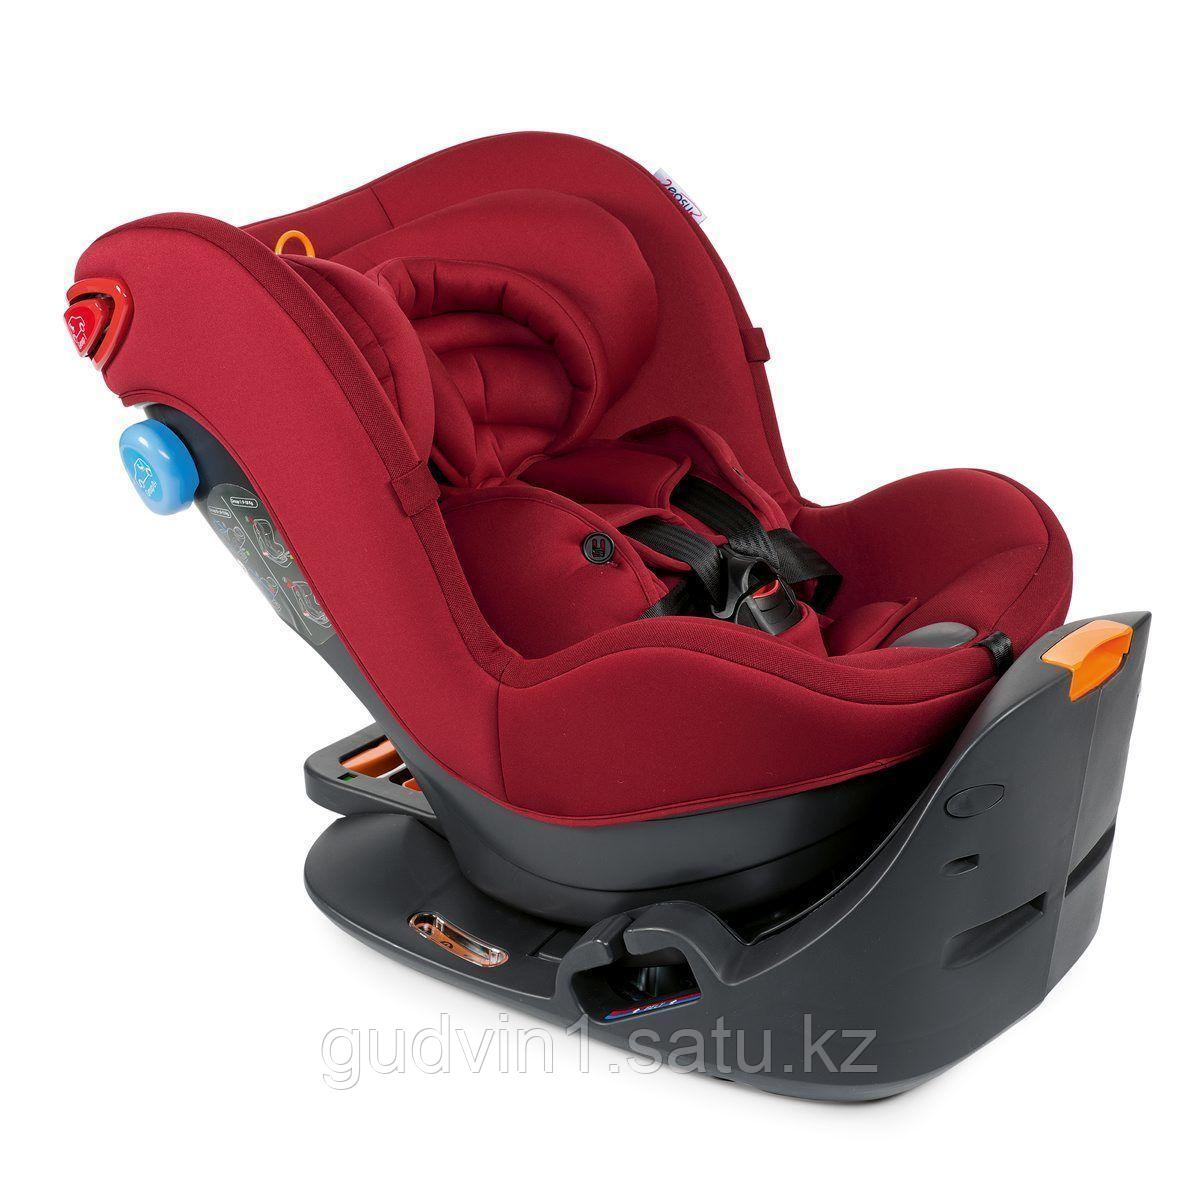 Chicco: Автокресло 2EASY Red Passion (0-18 kg) 0+ код: 1131075